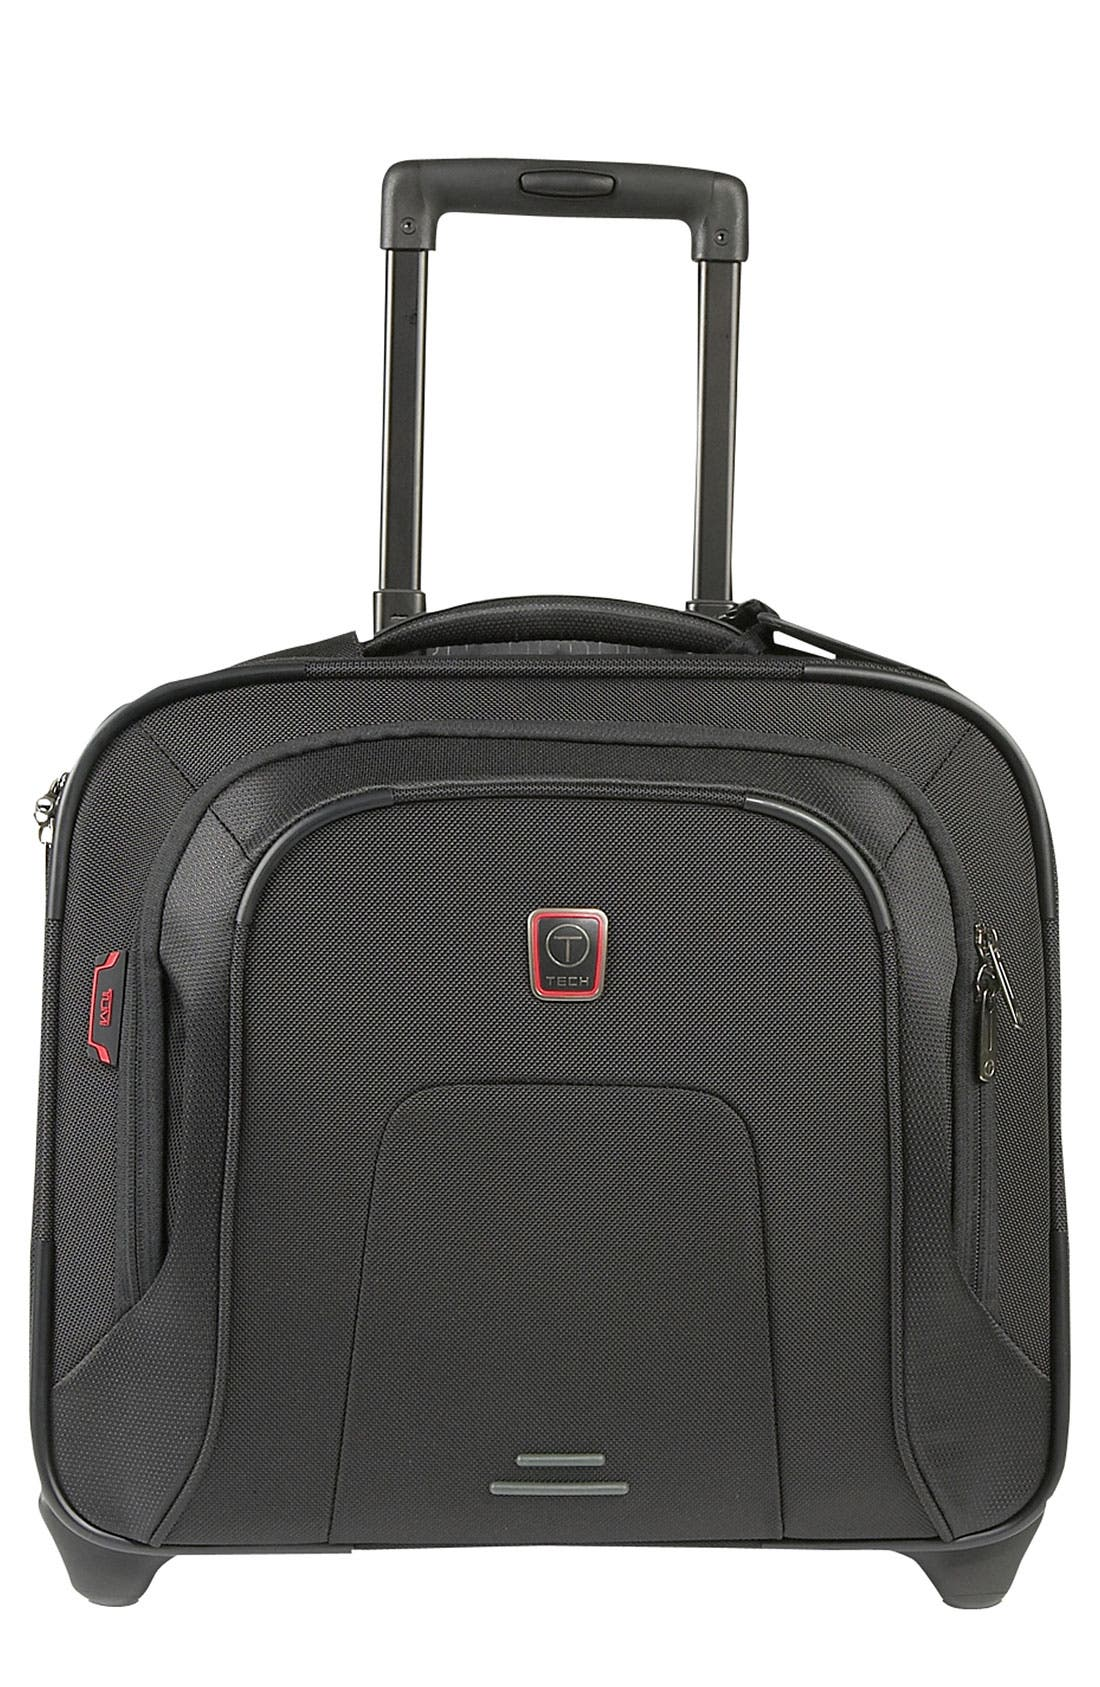 Main Image - T-Tech by Tumi 'Presidio MacArthur' Wheeled Compact Laptop Briefcase